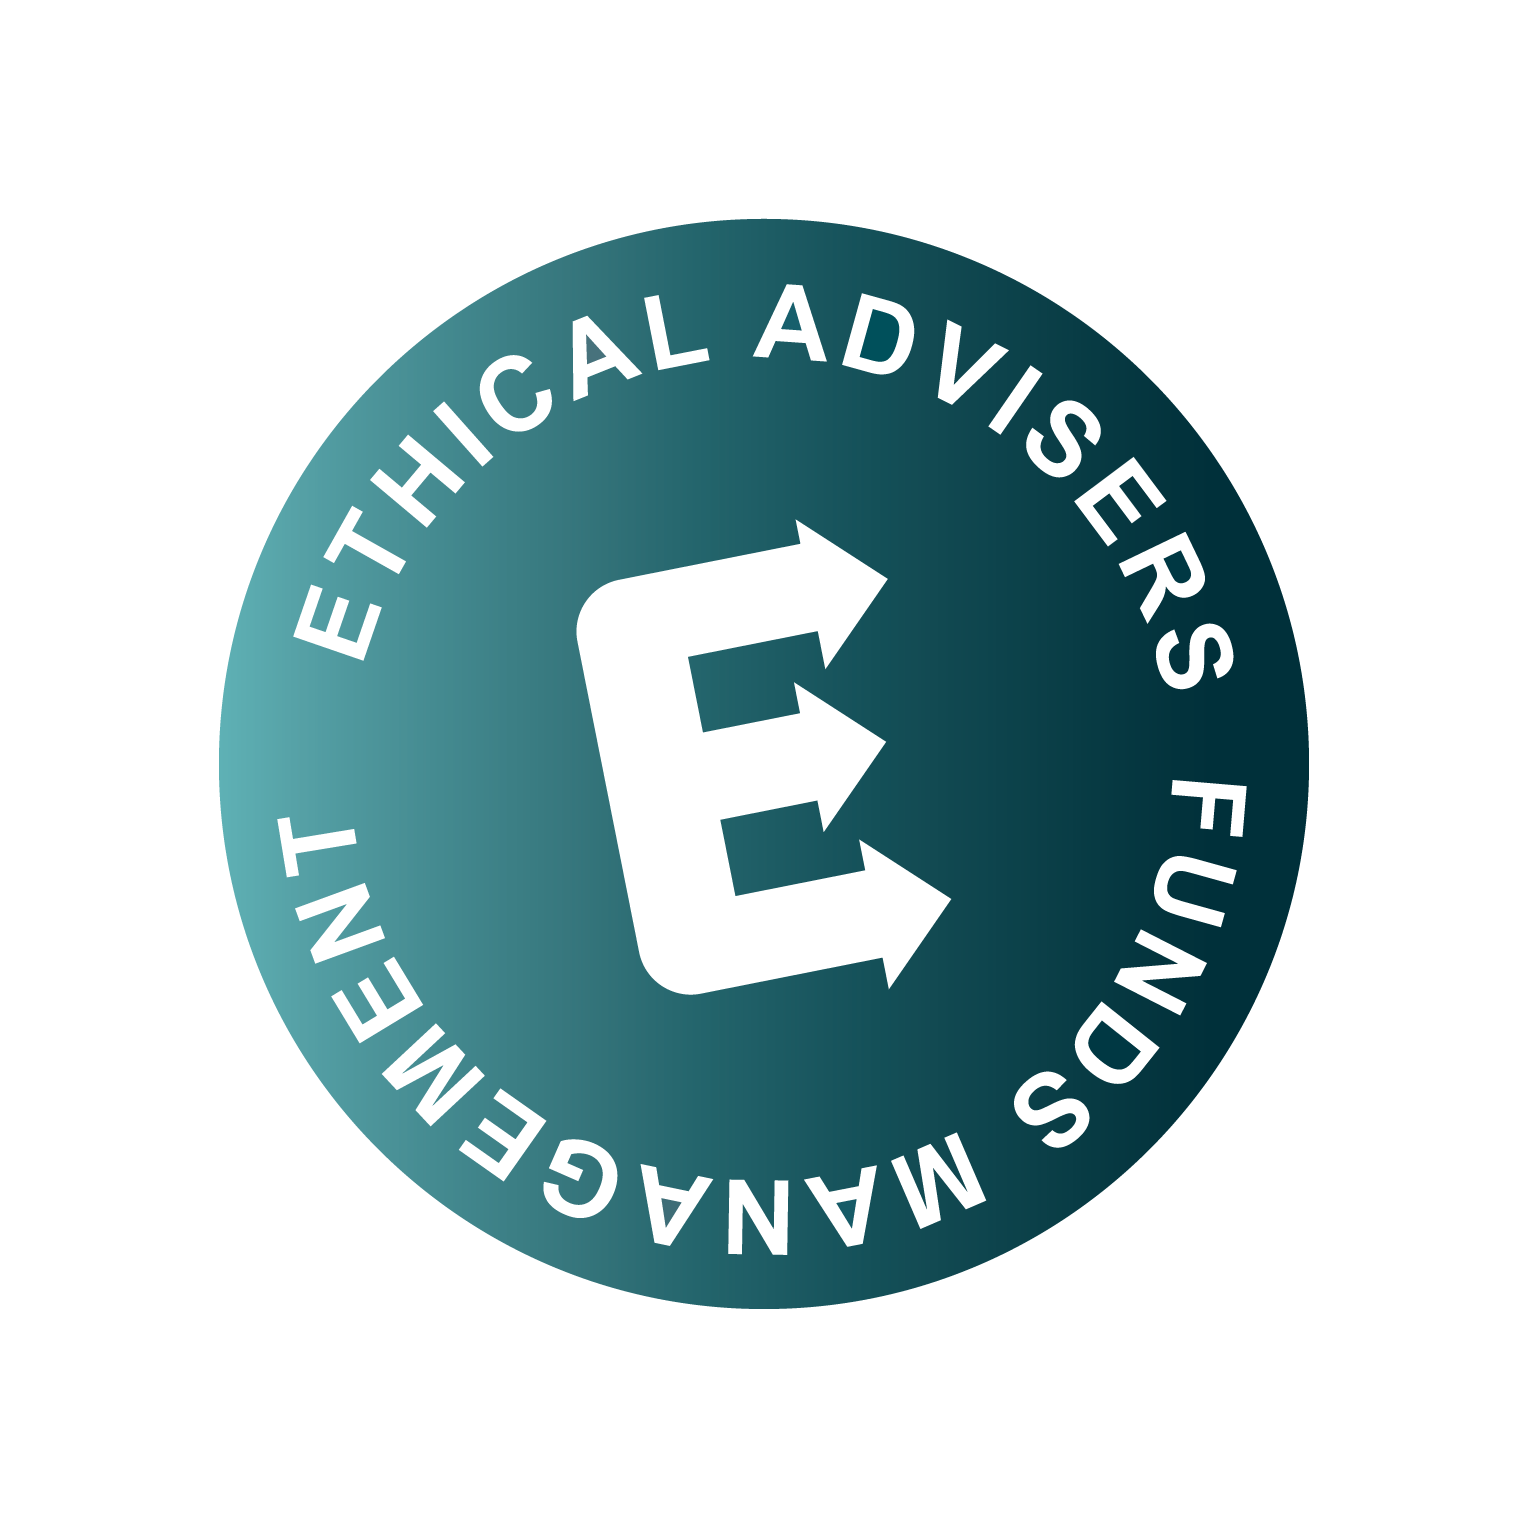 Ethical advisers funds management 2019 logo transparents